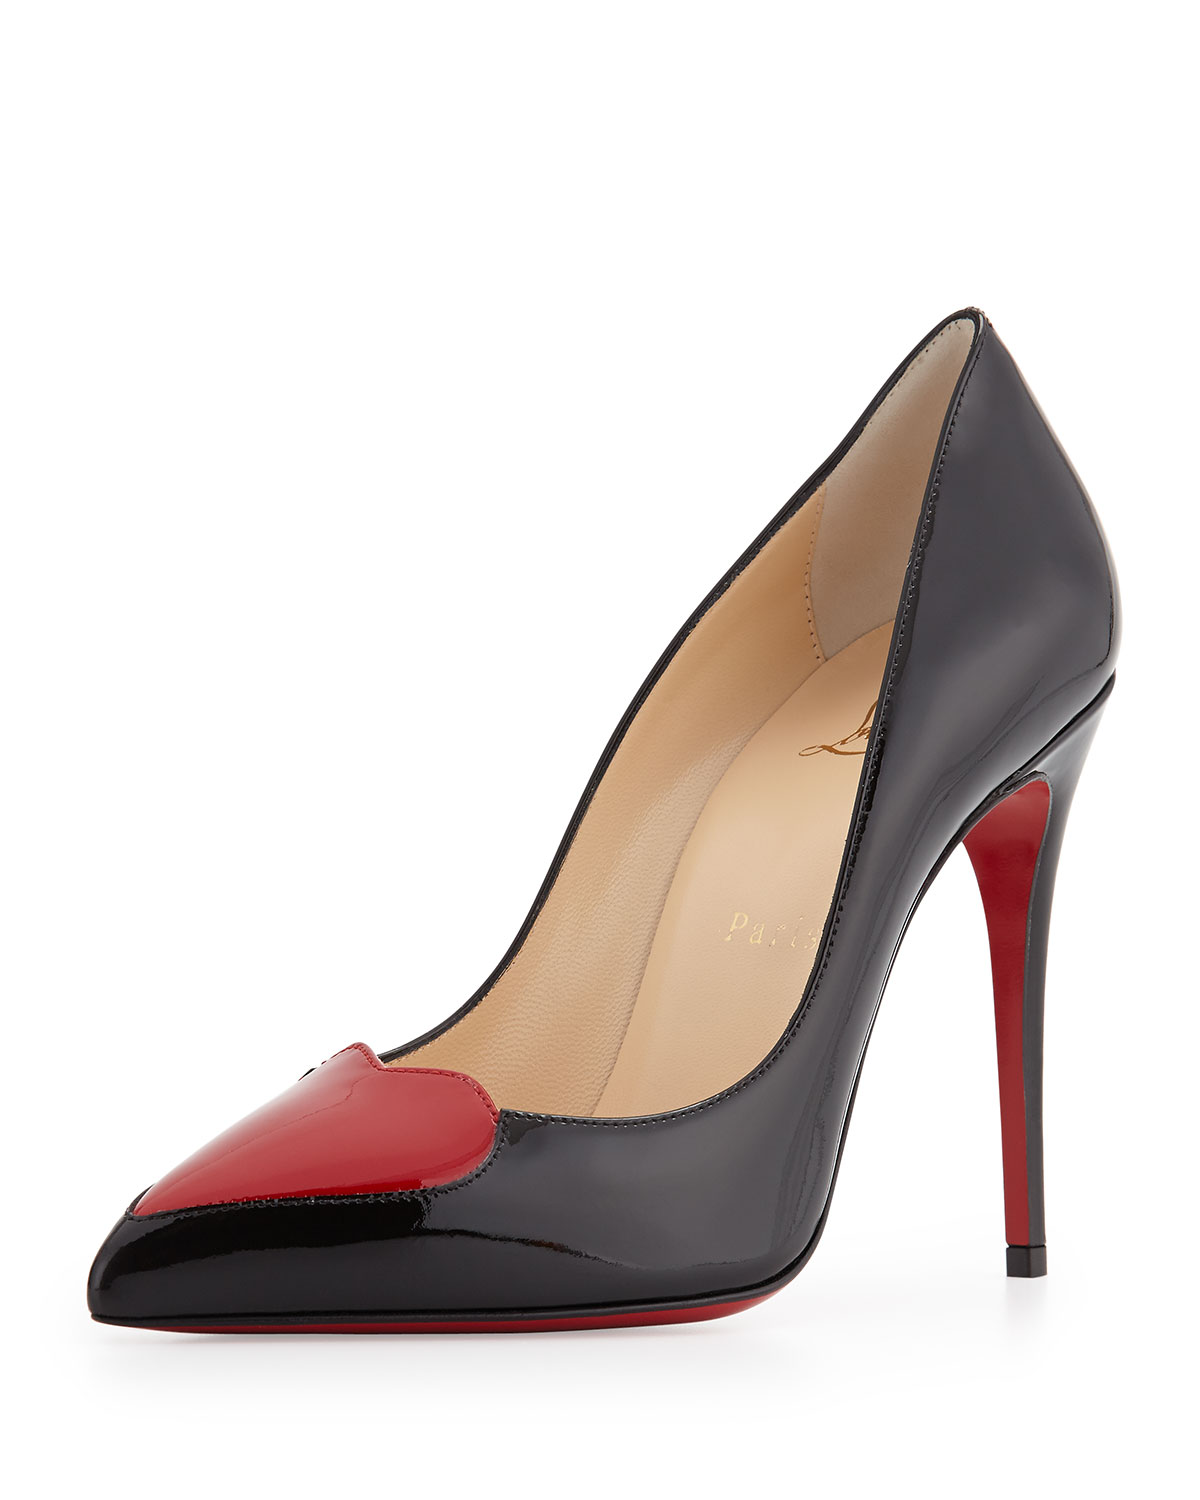 58226e77796 Christian Louboutin Cora Patent Heart Red Sole Pump